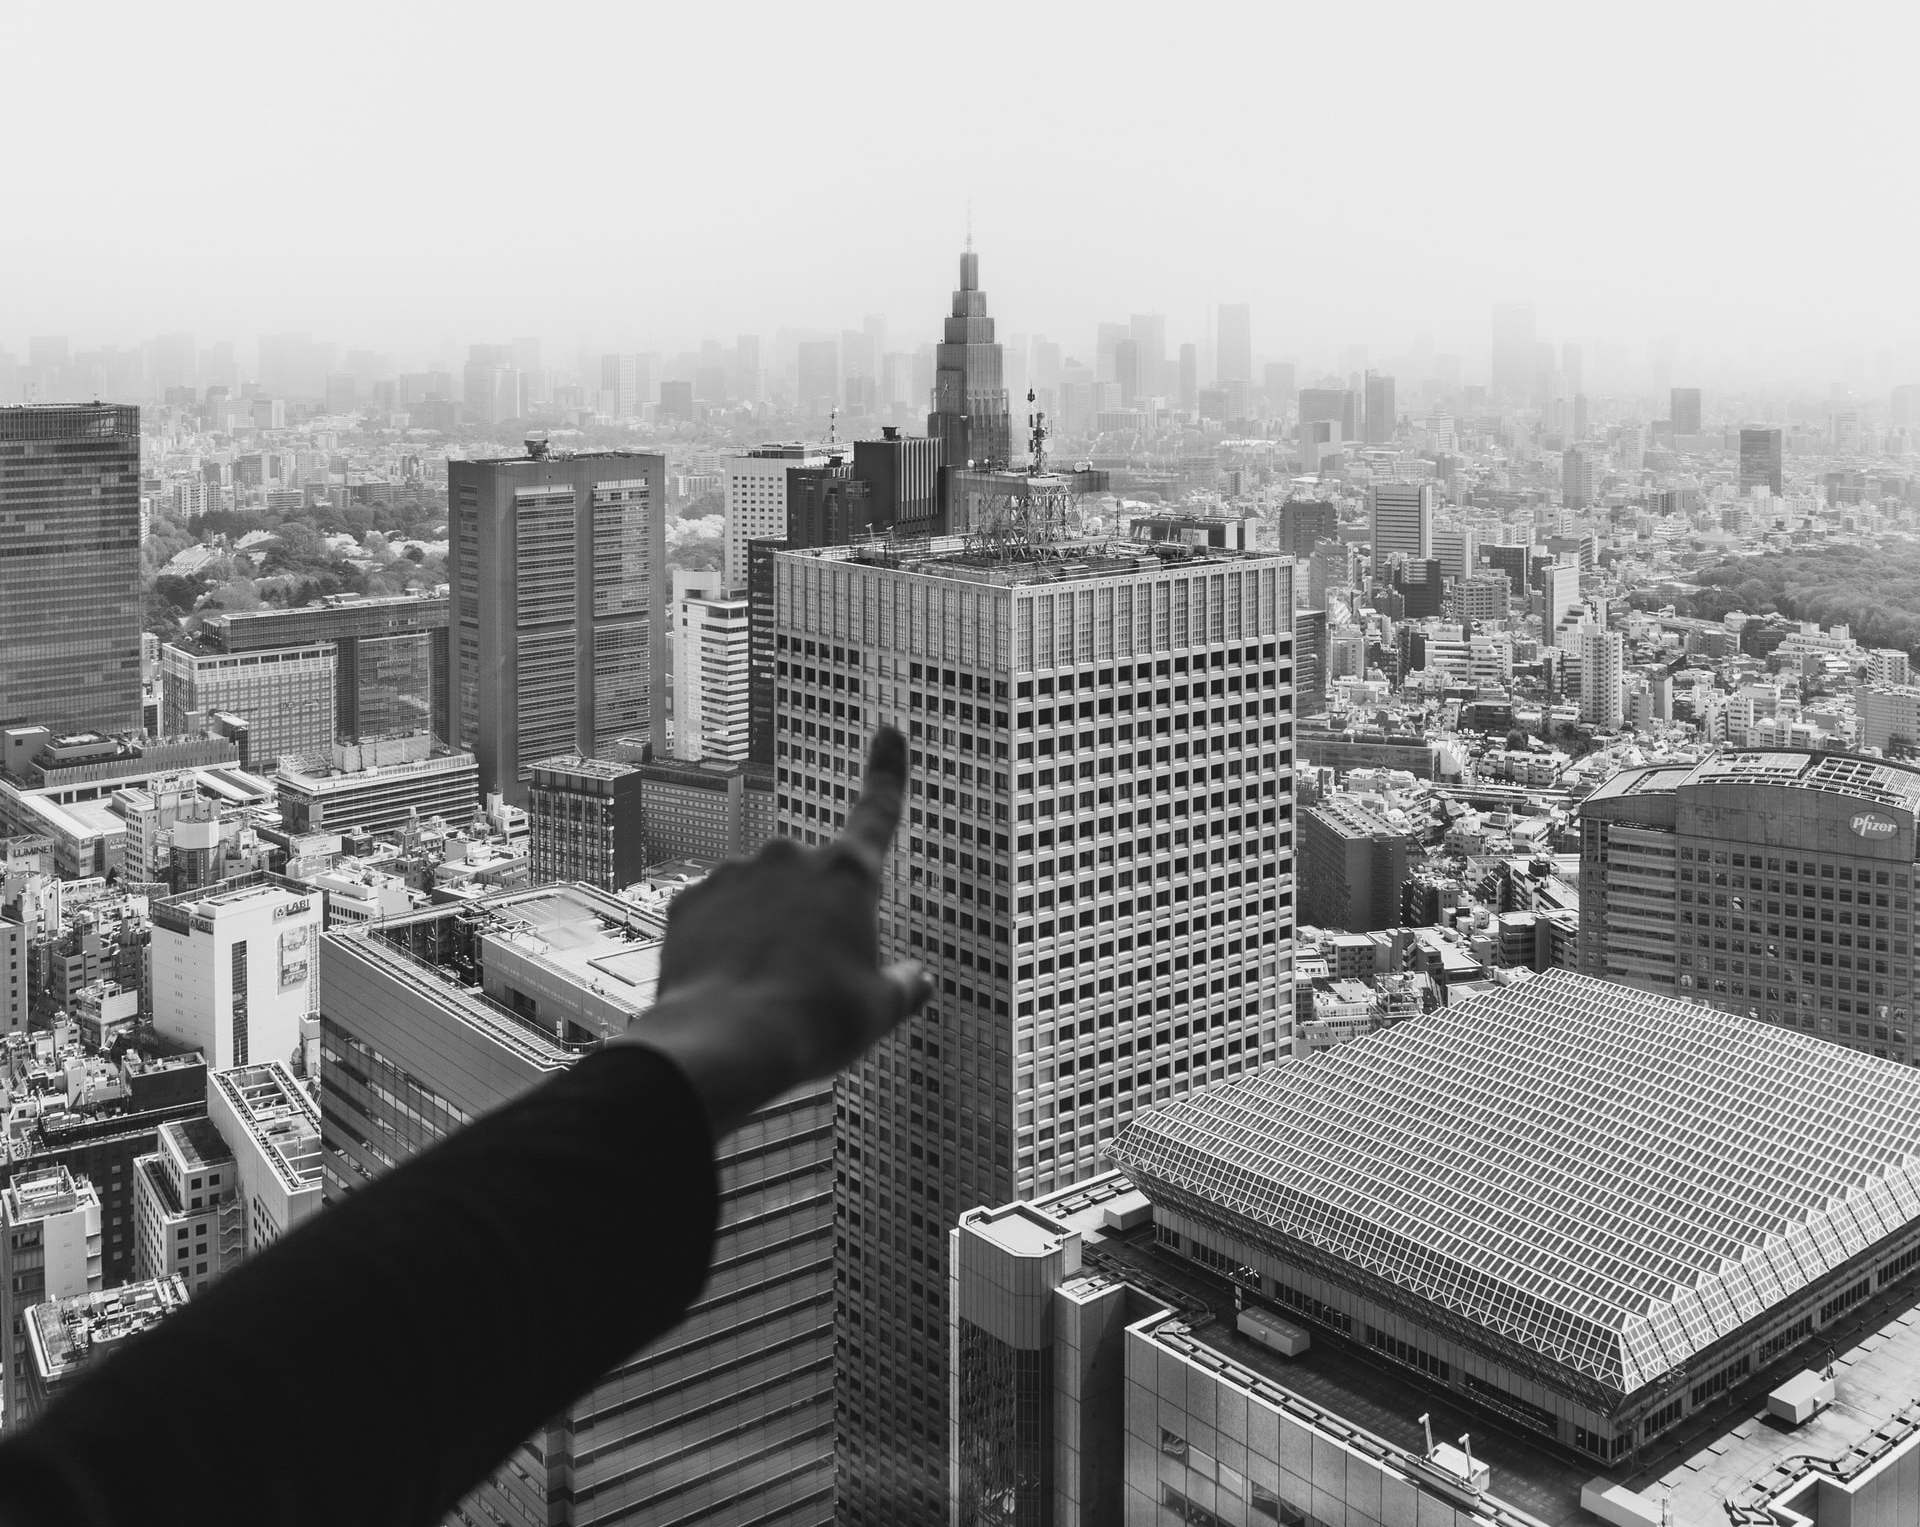 Finger pointing at a skyscraper in a large city